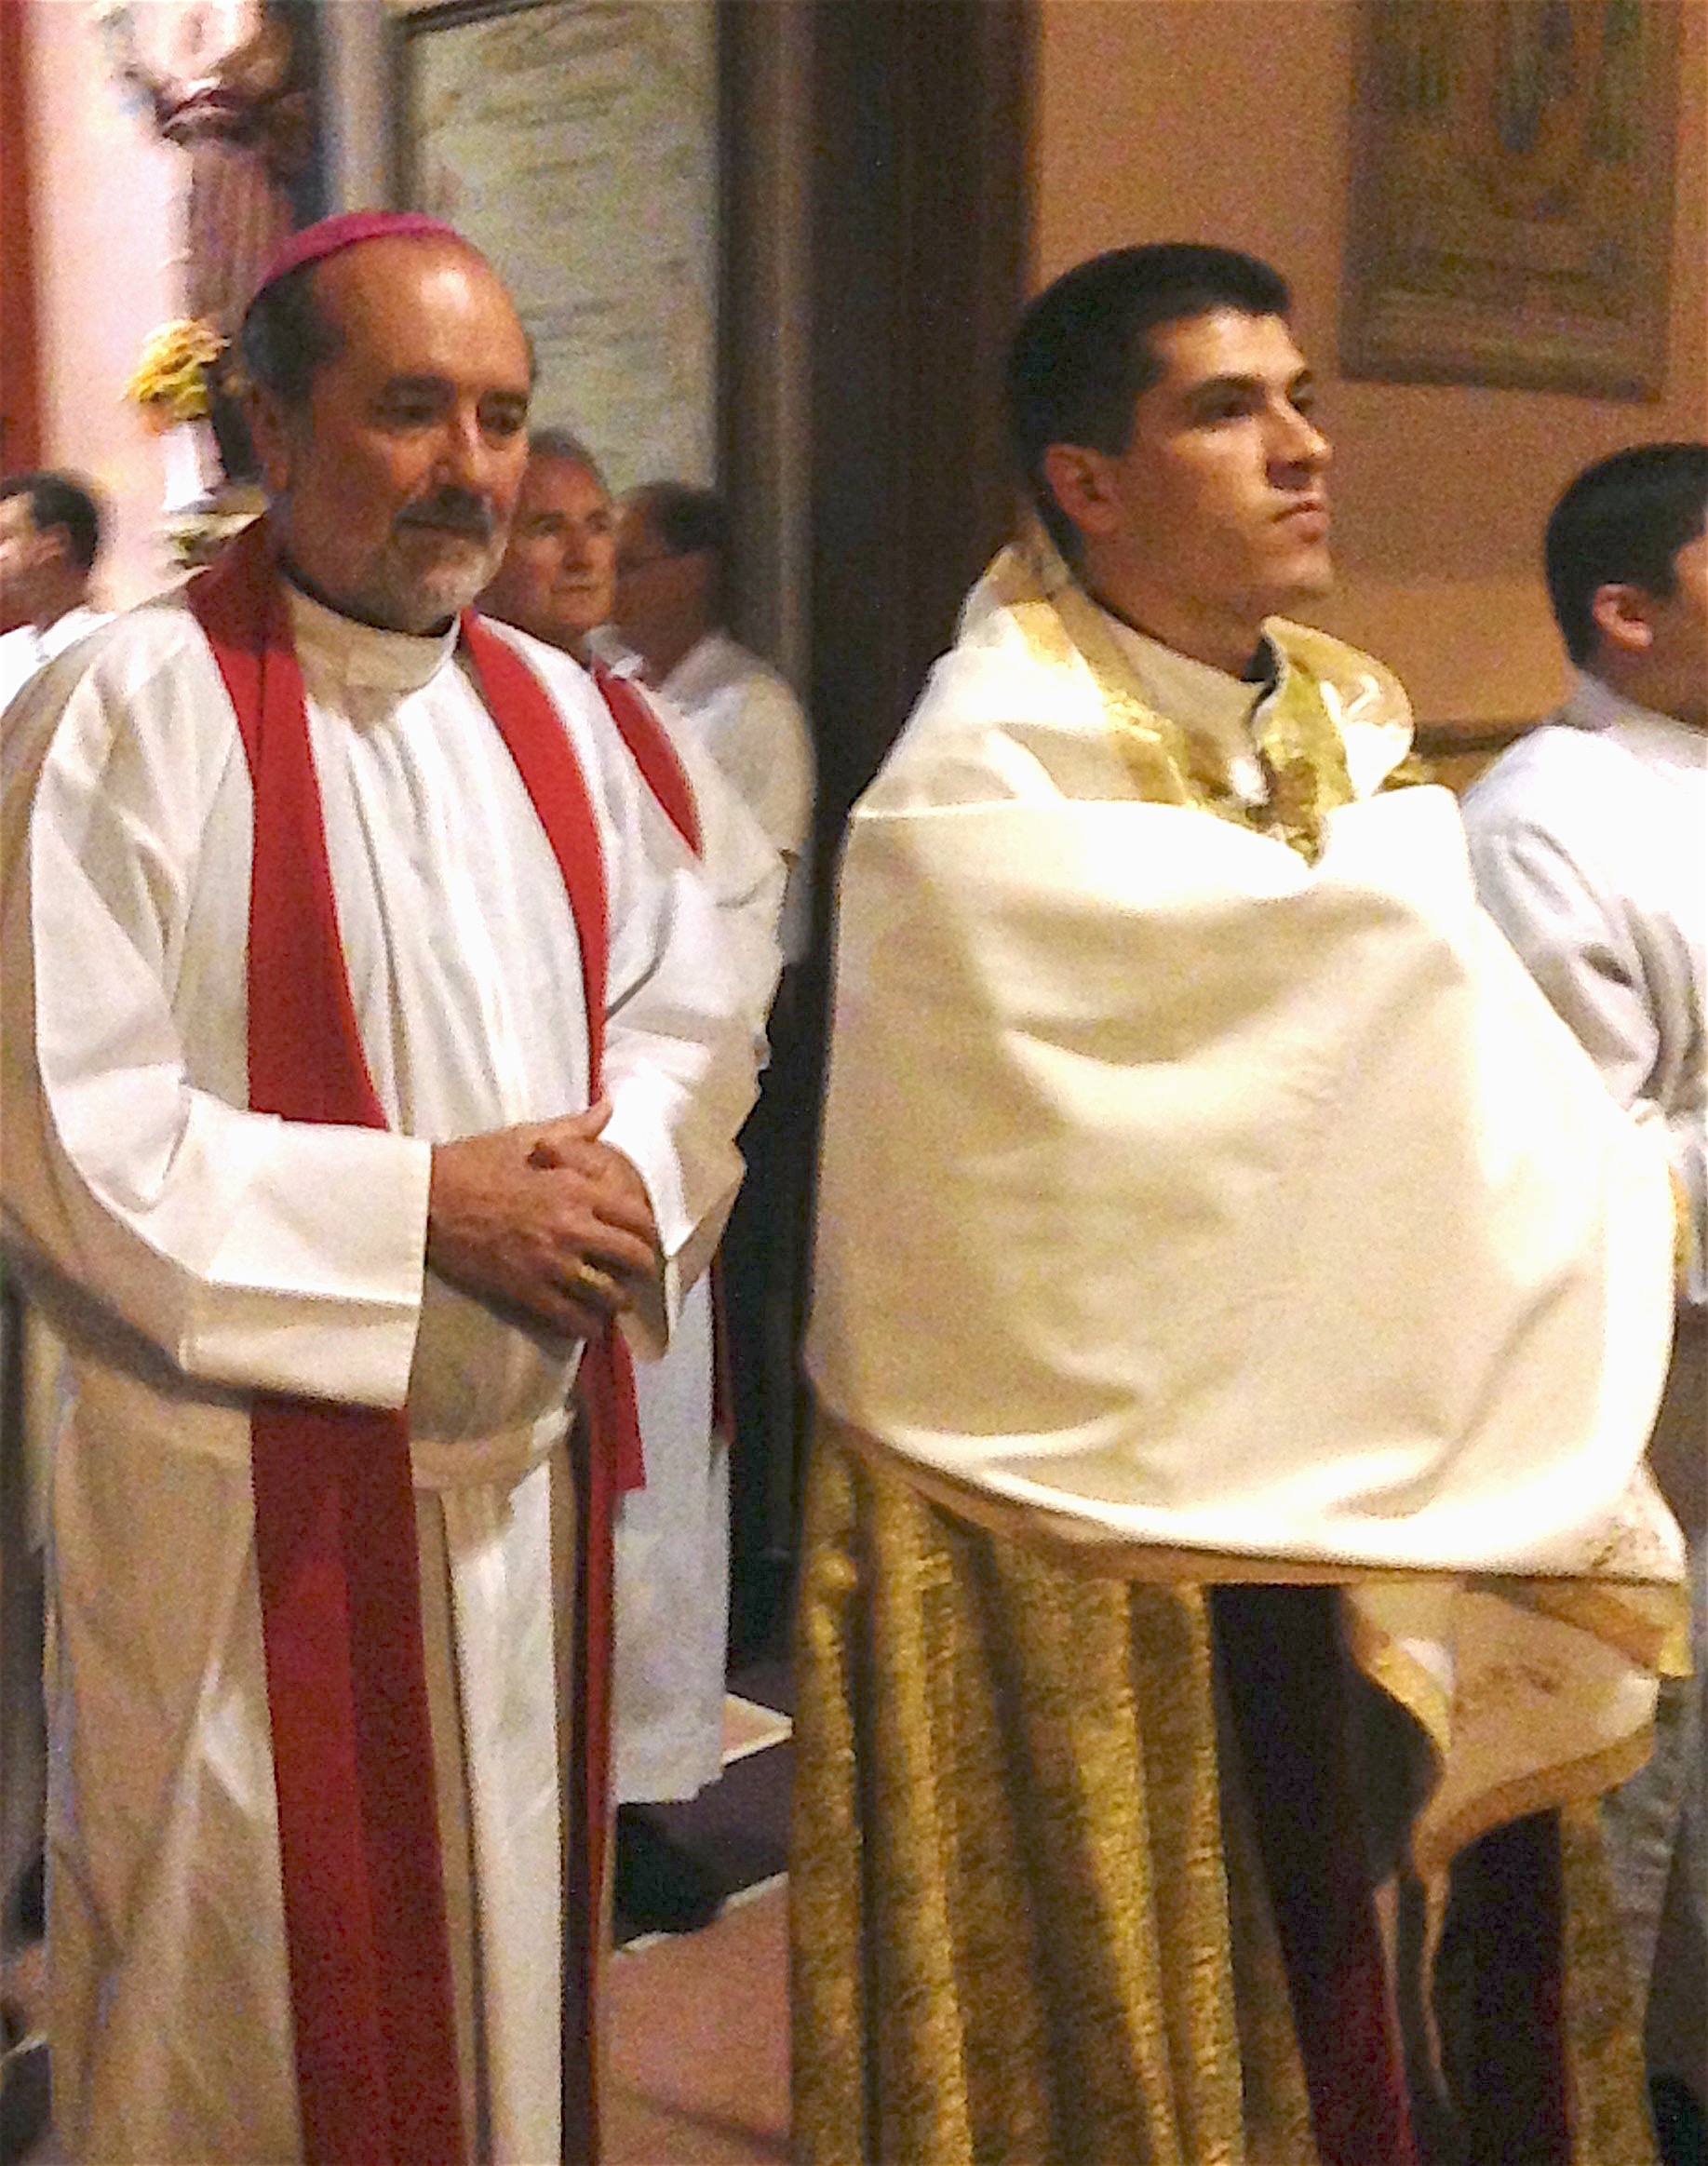 Fr Octavio Cortez came to St. Anthony's in September, 2015. We thank Fr. Octavio for his dedication and spirituality that he brings to our parish.  Recently St Kilian Church merged with St. Anthony of Padua Church.  We welcome those parishioners here at St. Anthony and consider them to be a great blessing to our parish.